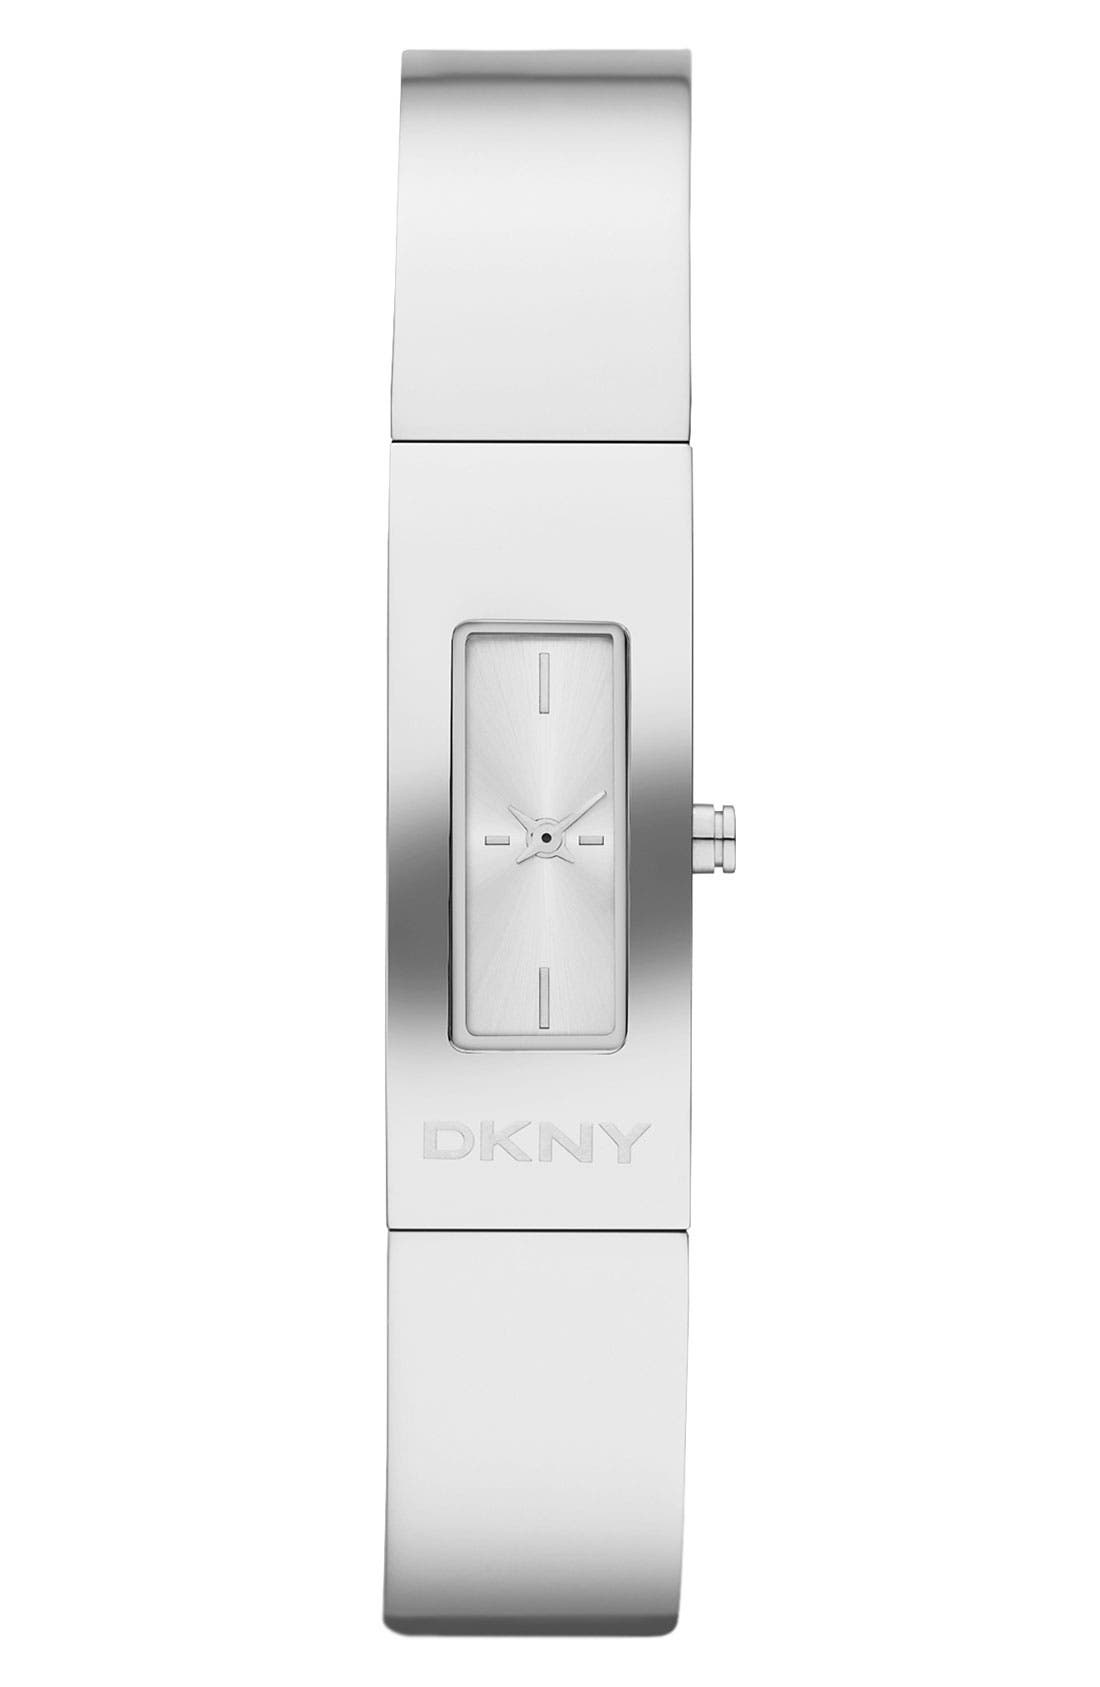 Alternate Image 1 Selected - DKNY 'Beekman' Logo Bangle Watch, 13mm x 33mm